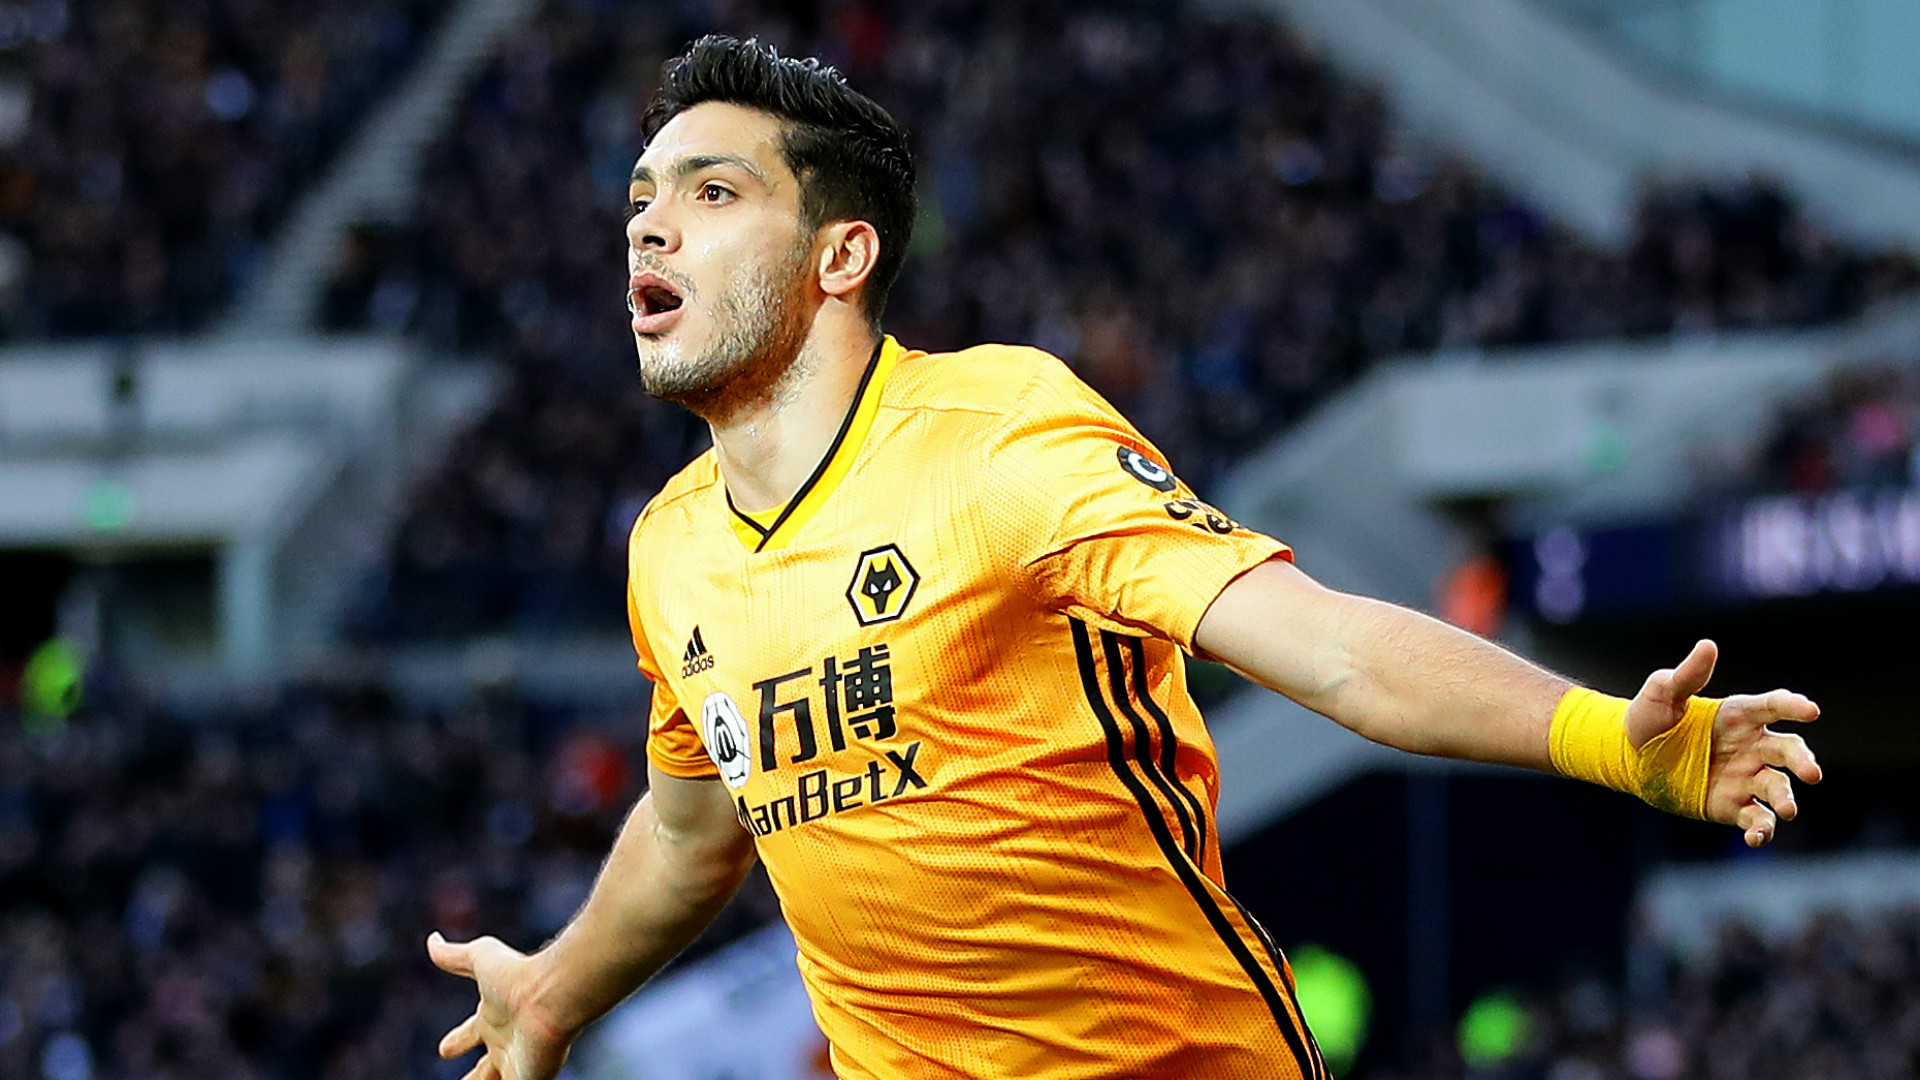 Man Utd target Jimenez says he is 'very happy' at Wolves